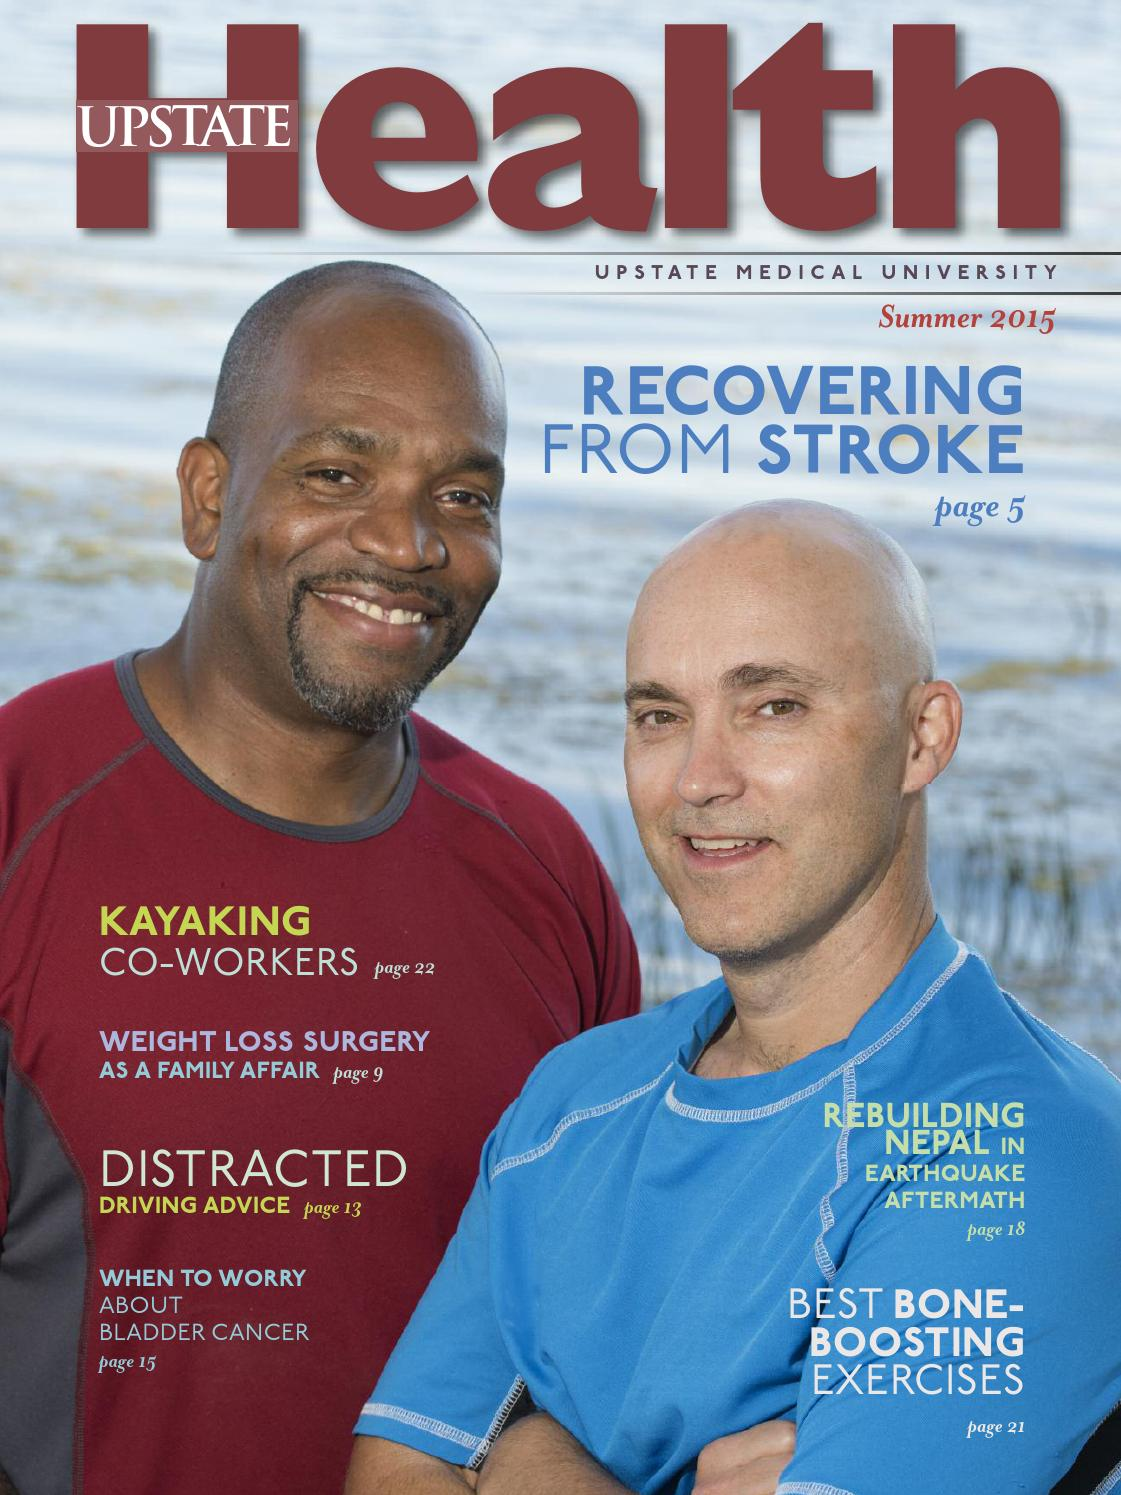 Upstate Health Summer 2015 By Upstate Medical University